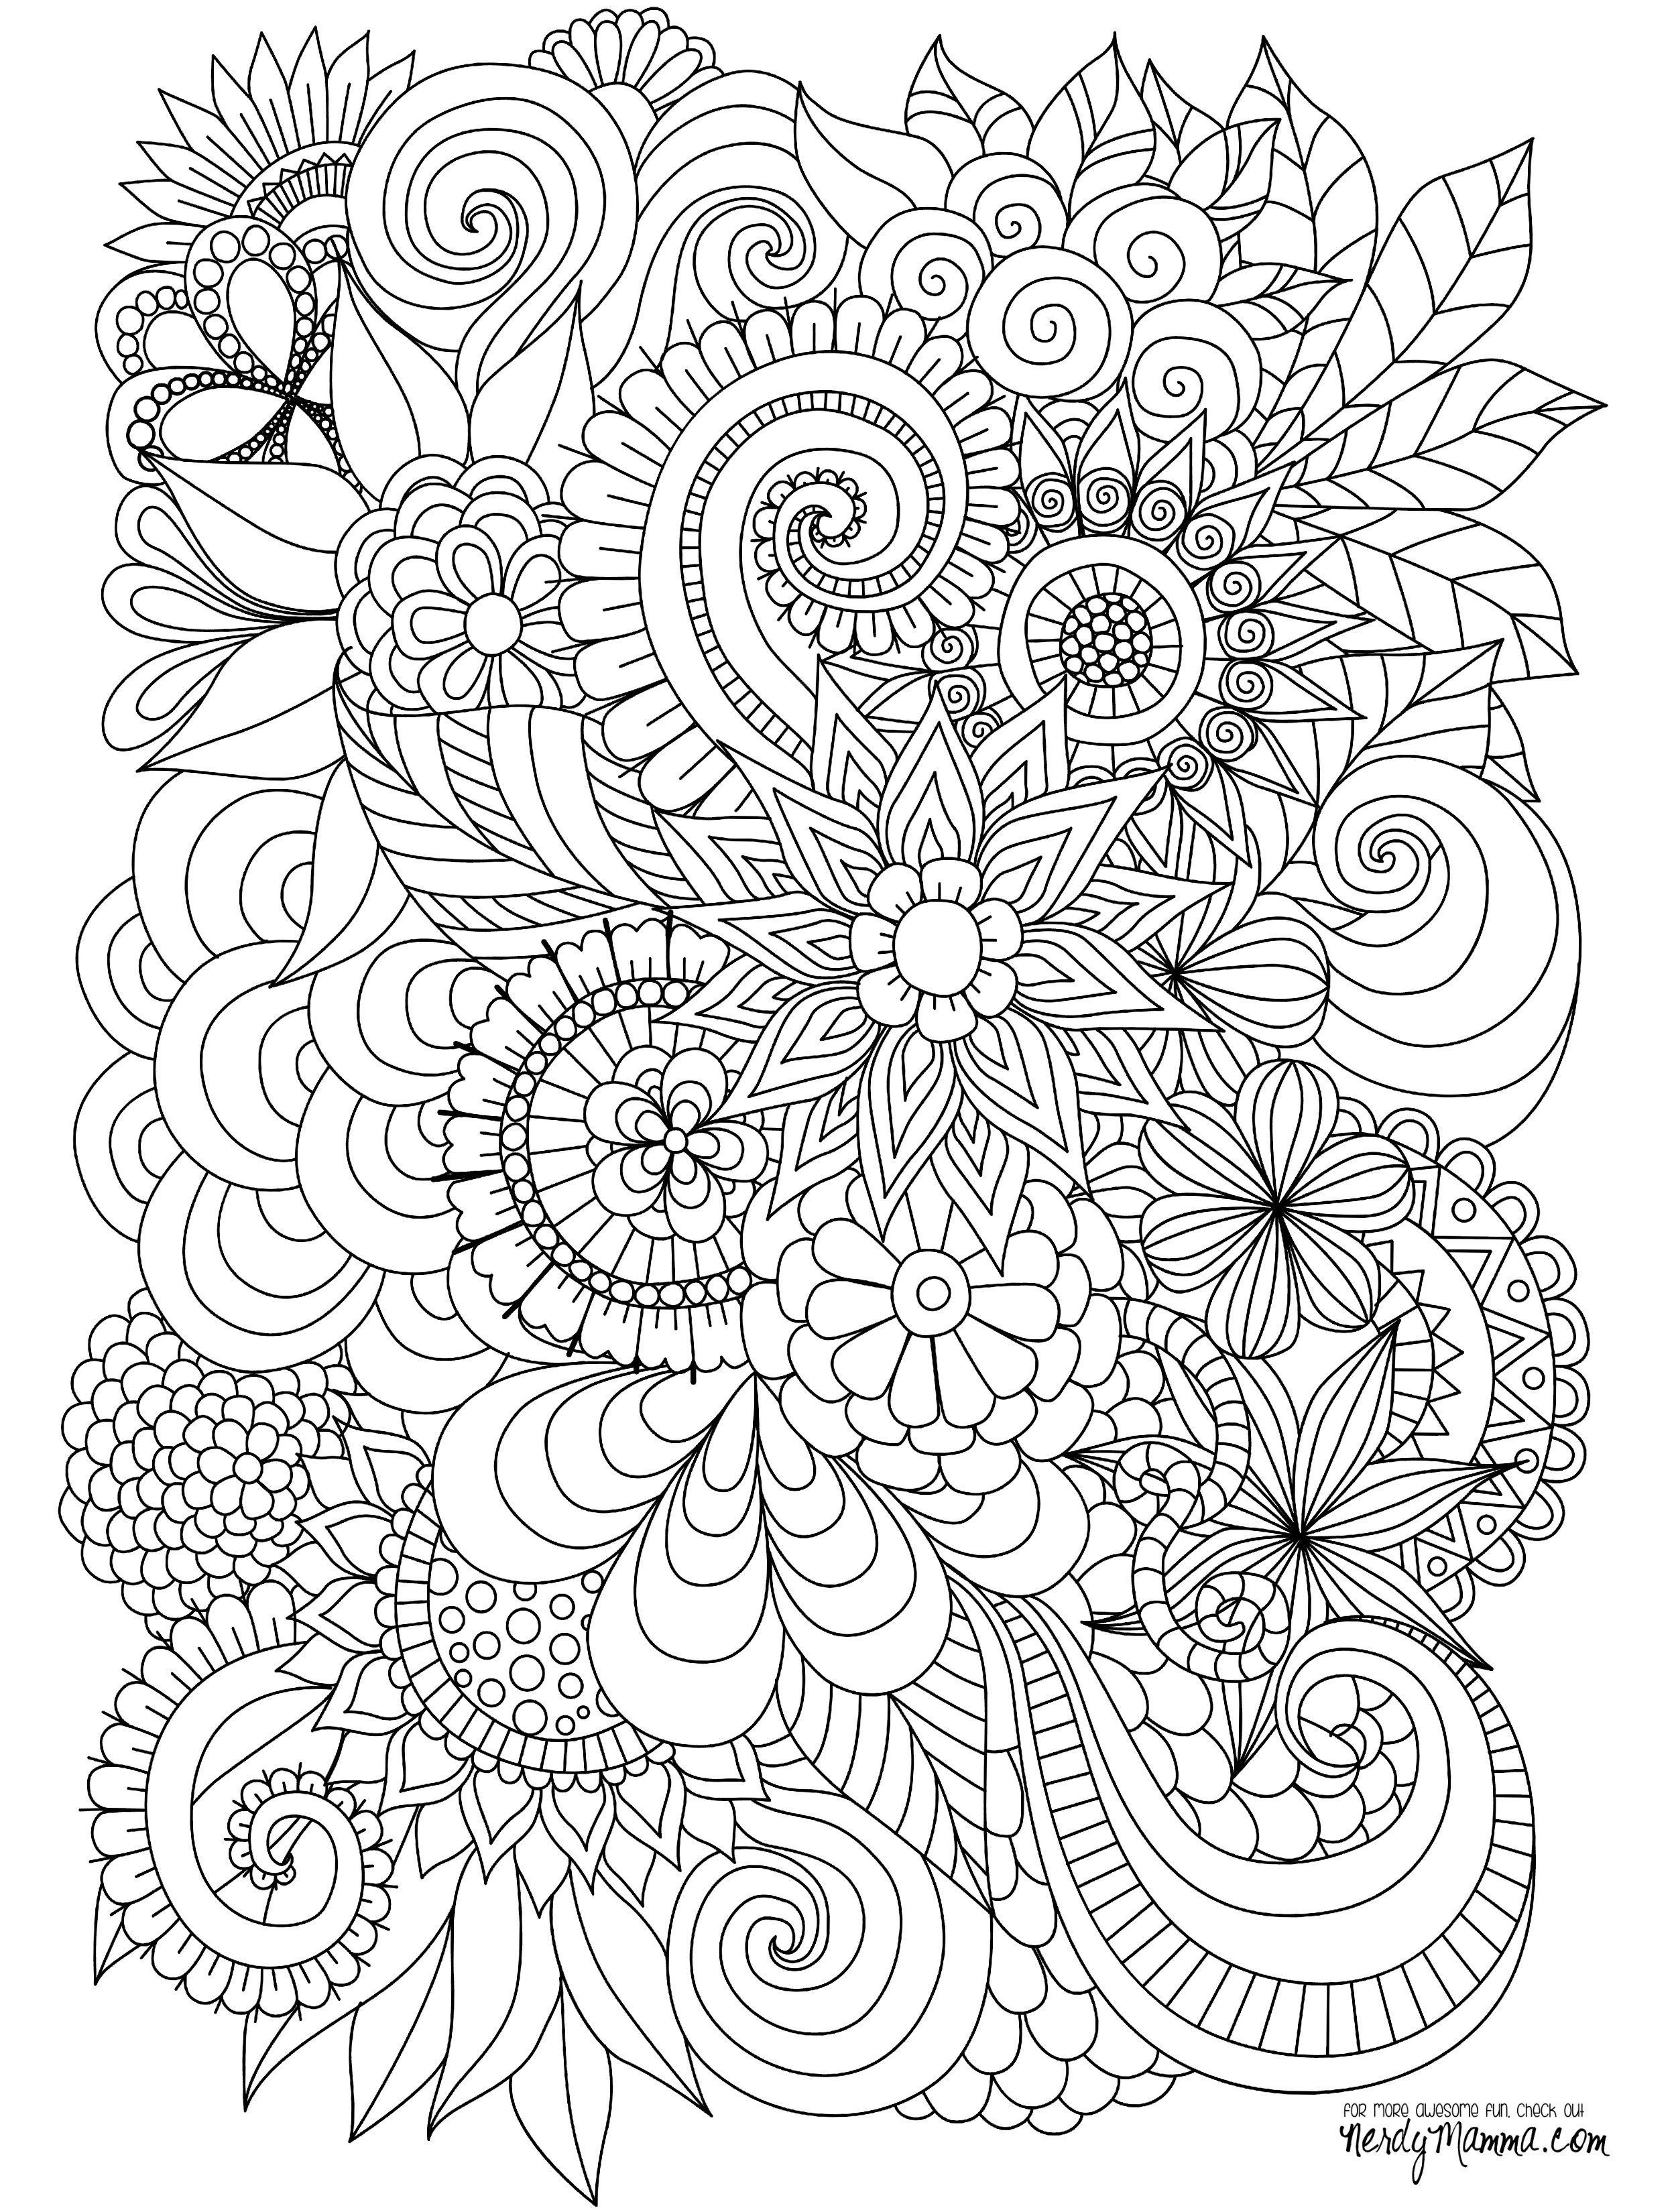 Nerf Coloring Pages  Gallery 16p - Free Download